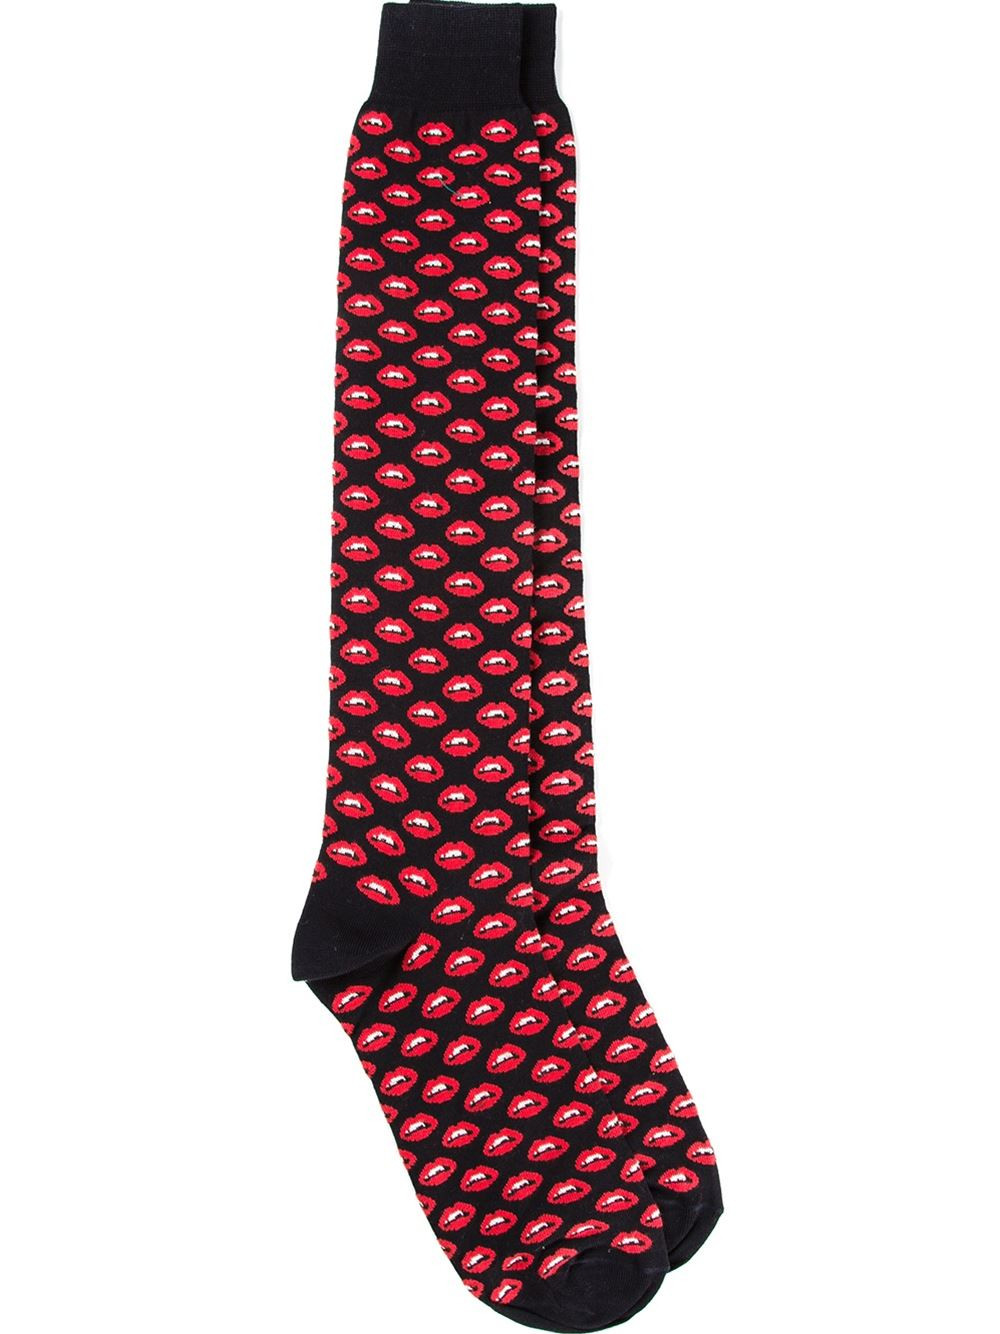 Patterned socks Fresh Lyst Fefe Mouth Patterned socks In Black for Men Of Superb 48 Images Patterned socks